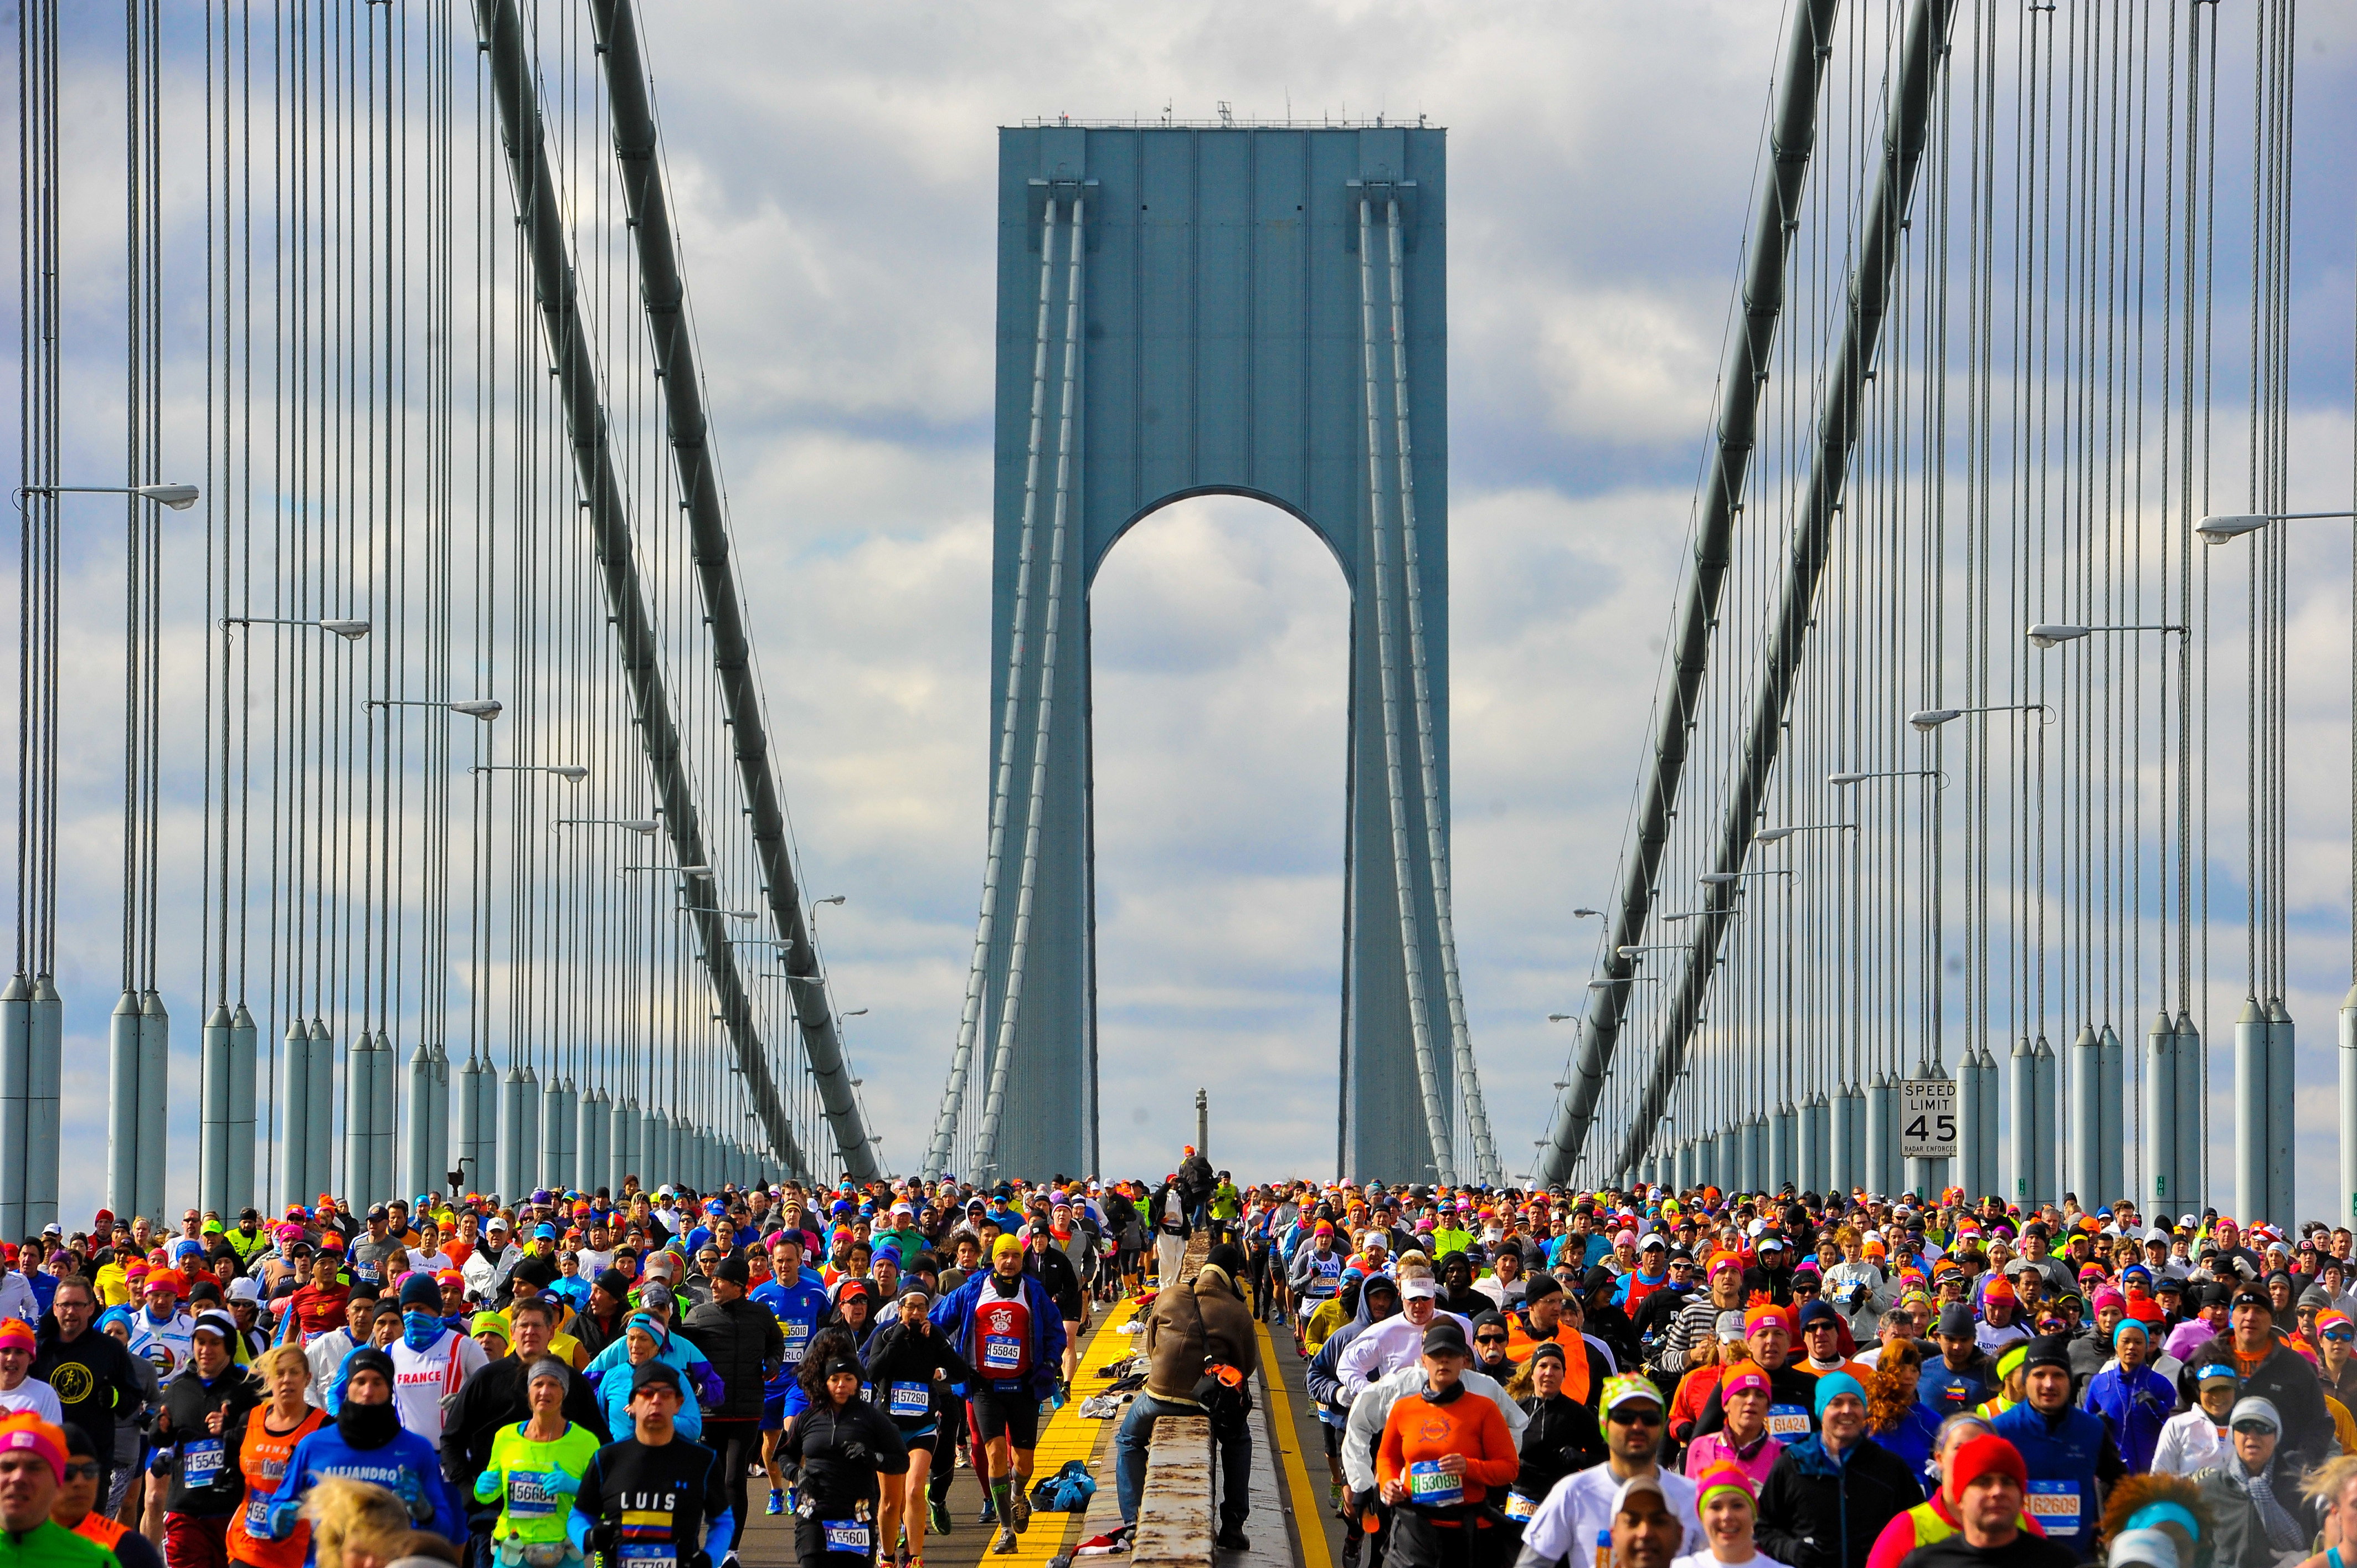 The Verrazano Bridge marks the start of one of racing's most iconic events. (Getty)